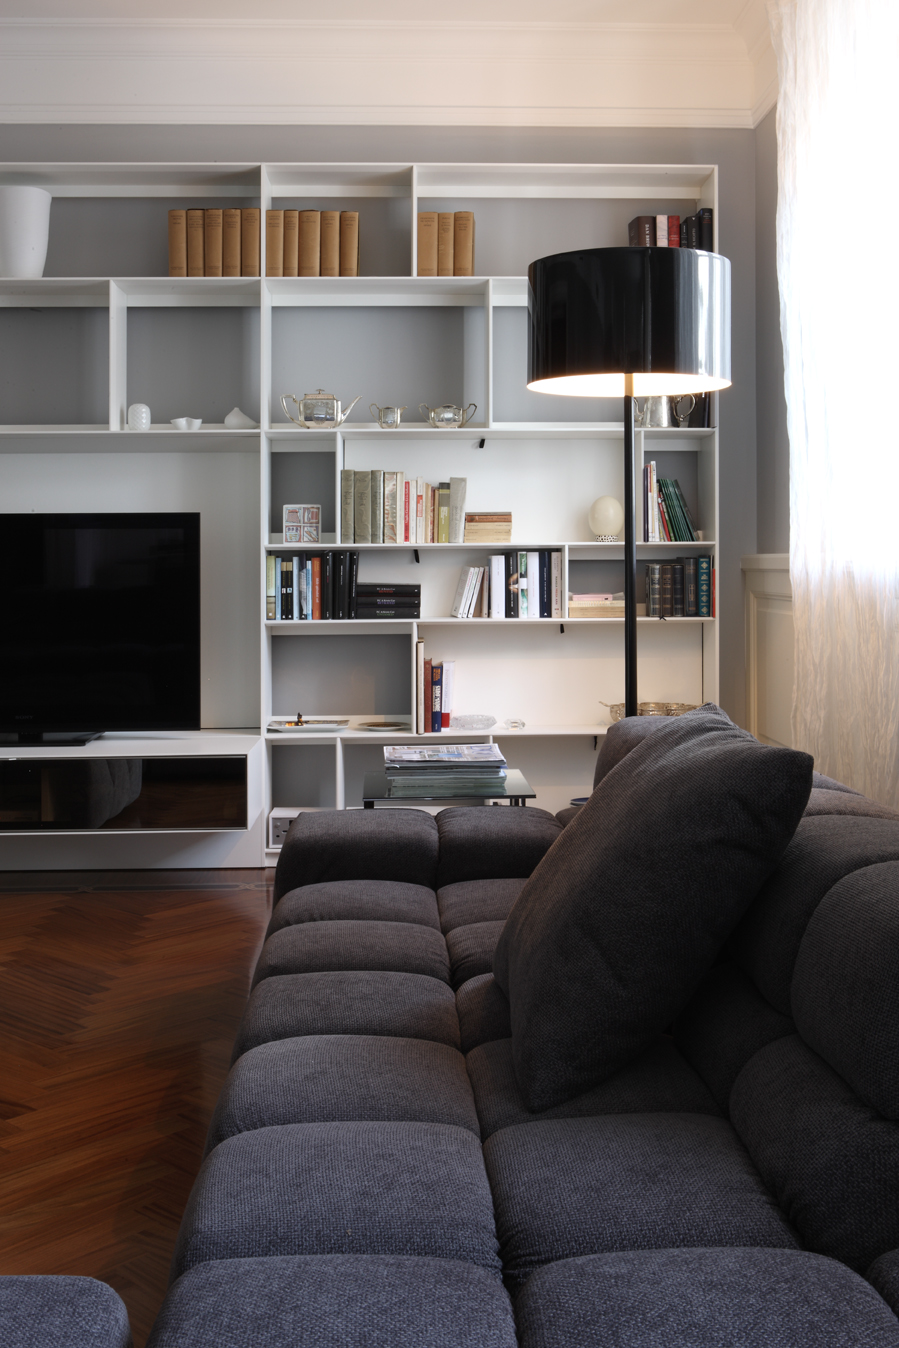 B&B Italia, Flos - living room - Alessandro Villa architect